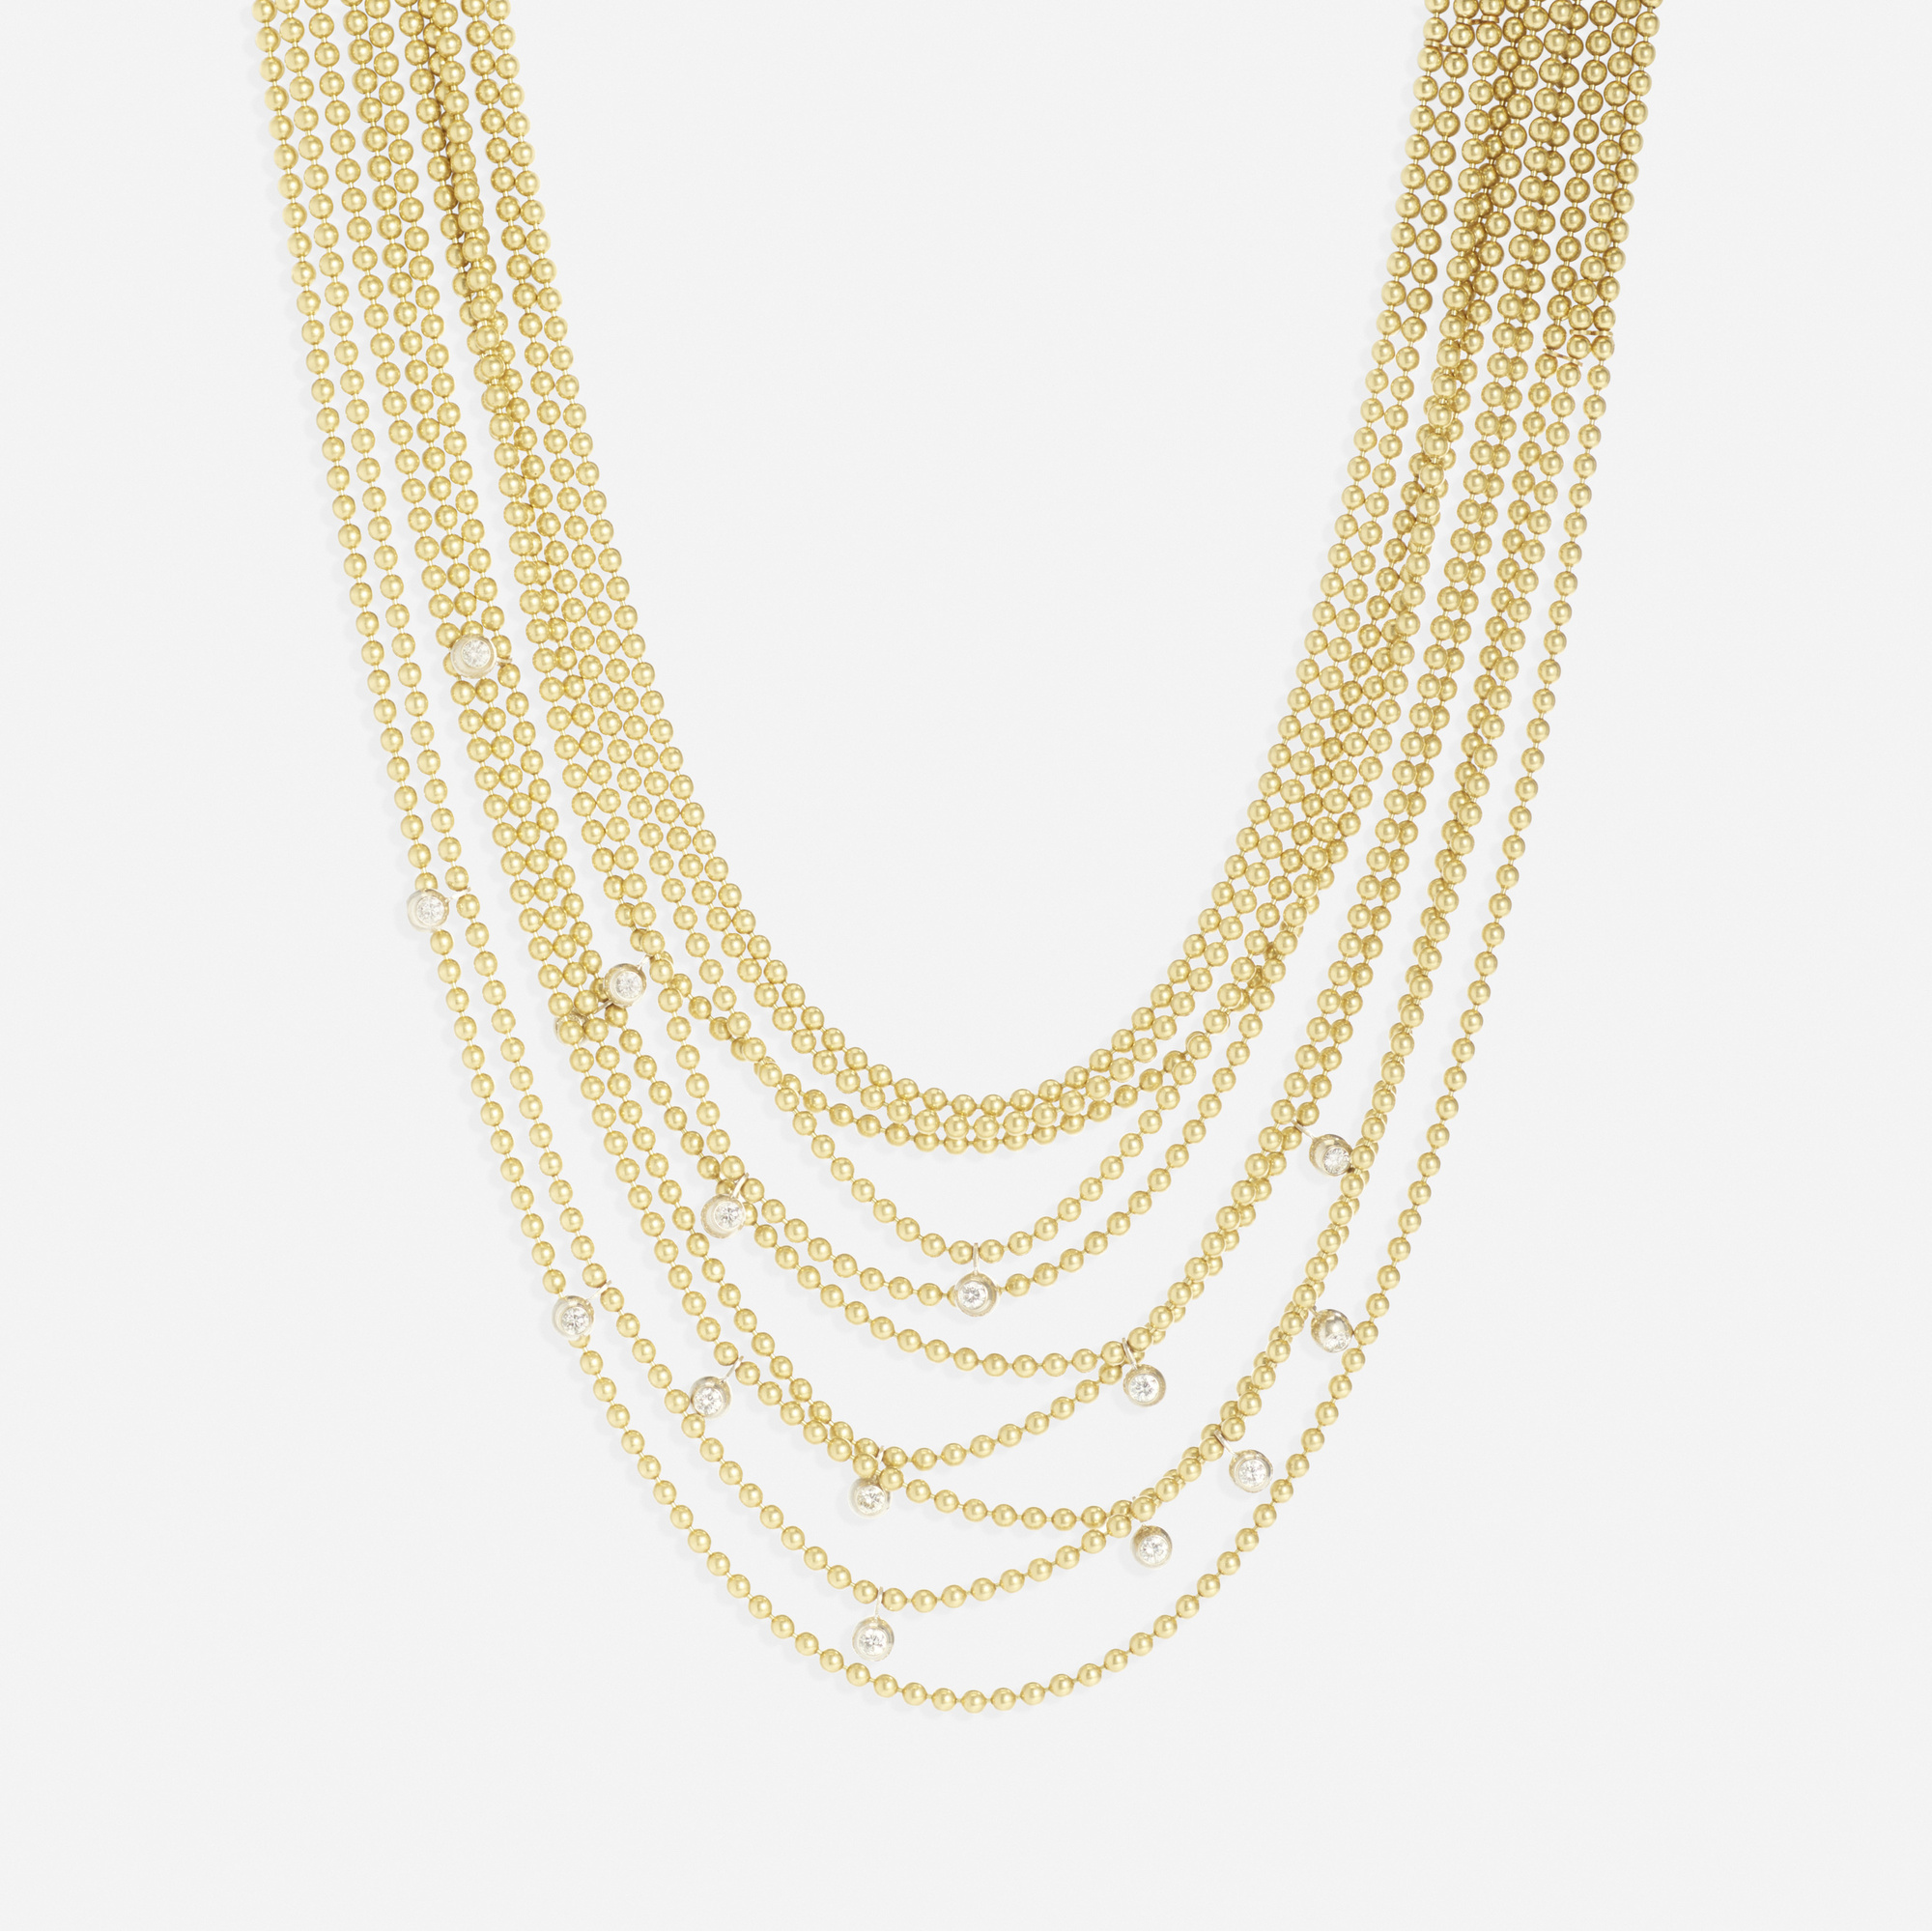 245: Cartier / A gold and diamond Draperie necklace (1 of 1)